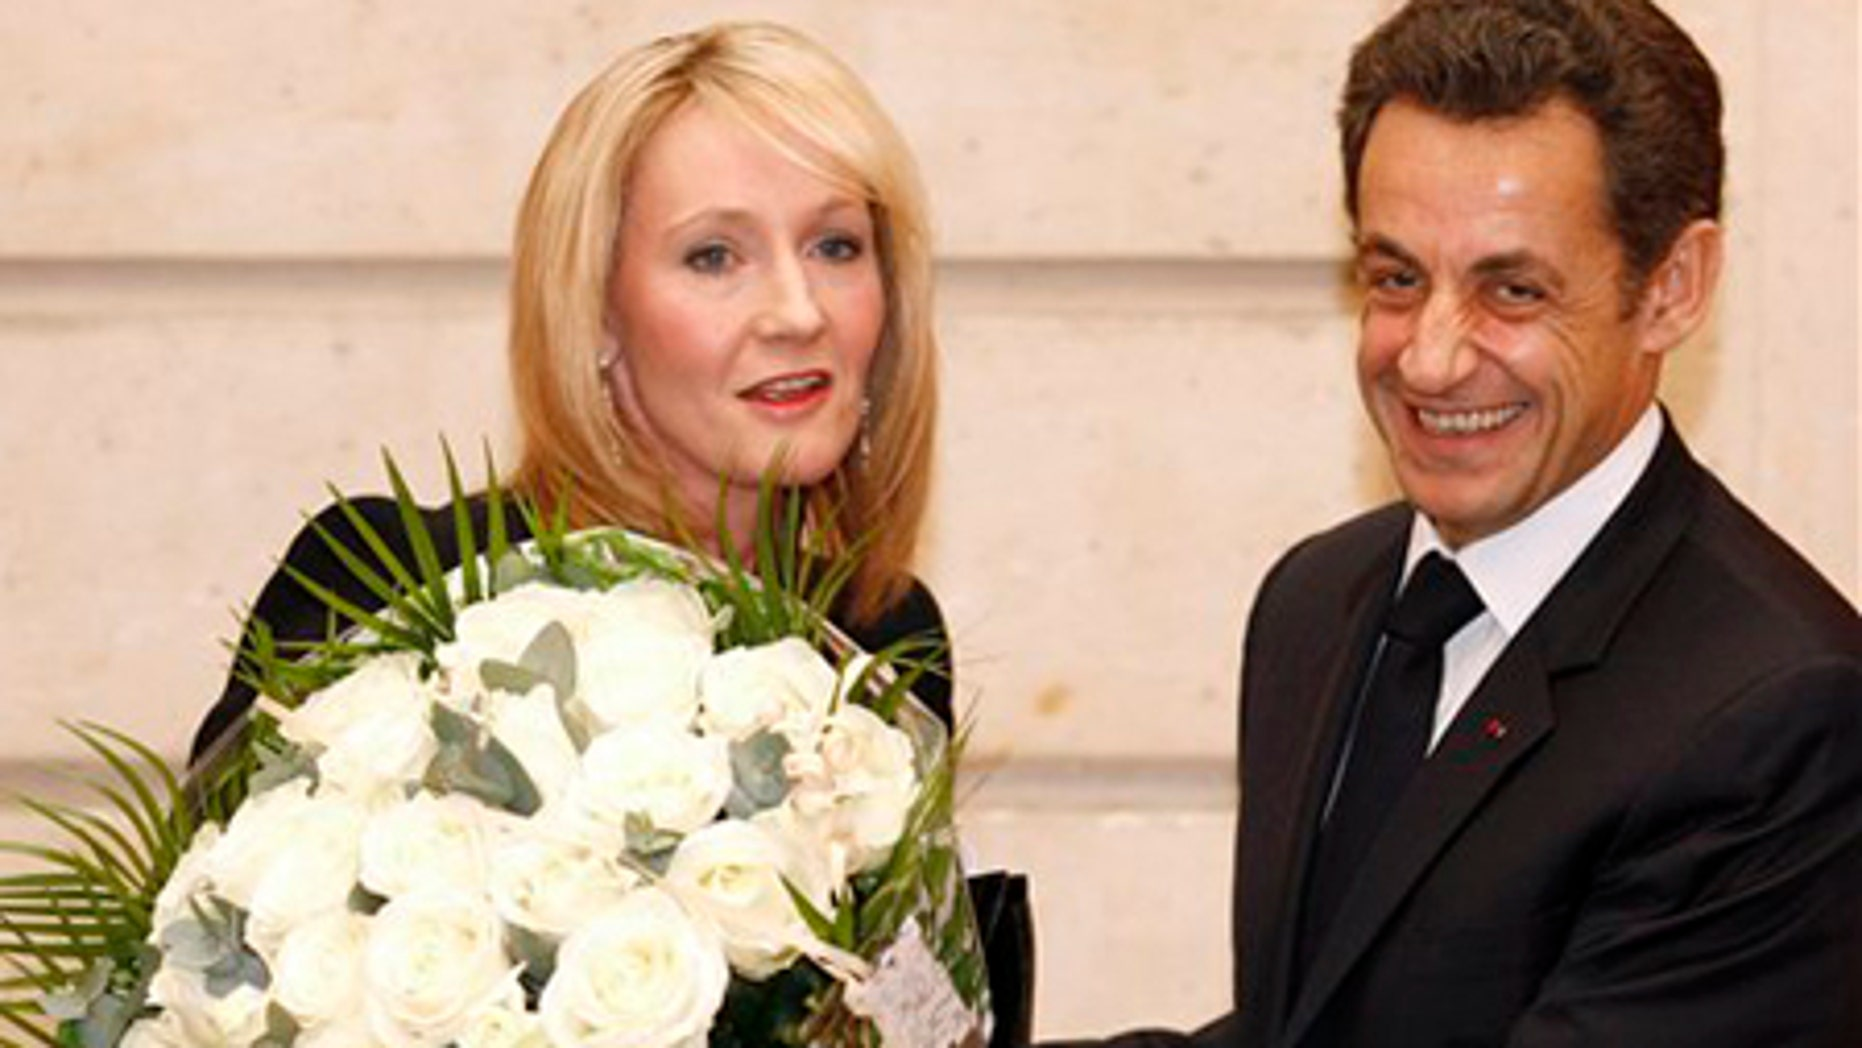 Feb. 3: British writer J.K. Rowling, left, receives a bouquet from French President Nicolas Sarkozy during a ceremony at the Elysee Palace in Paris.